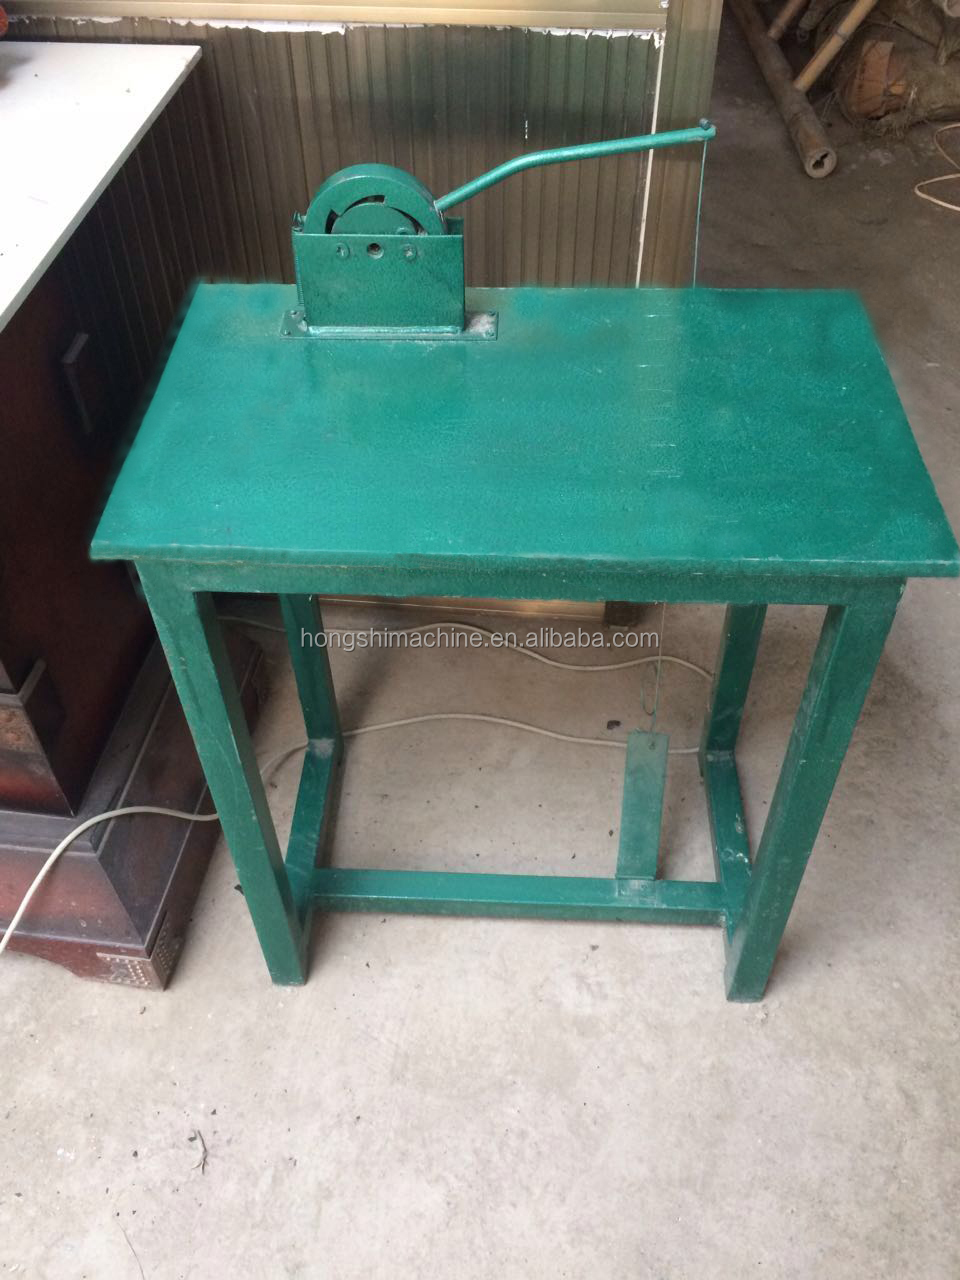 Complete waste paper pencil making machine